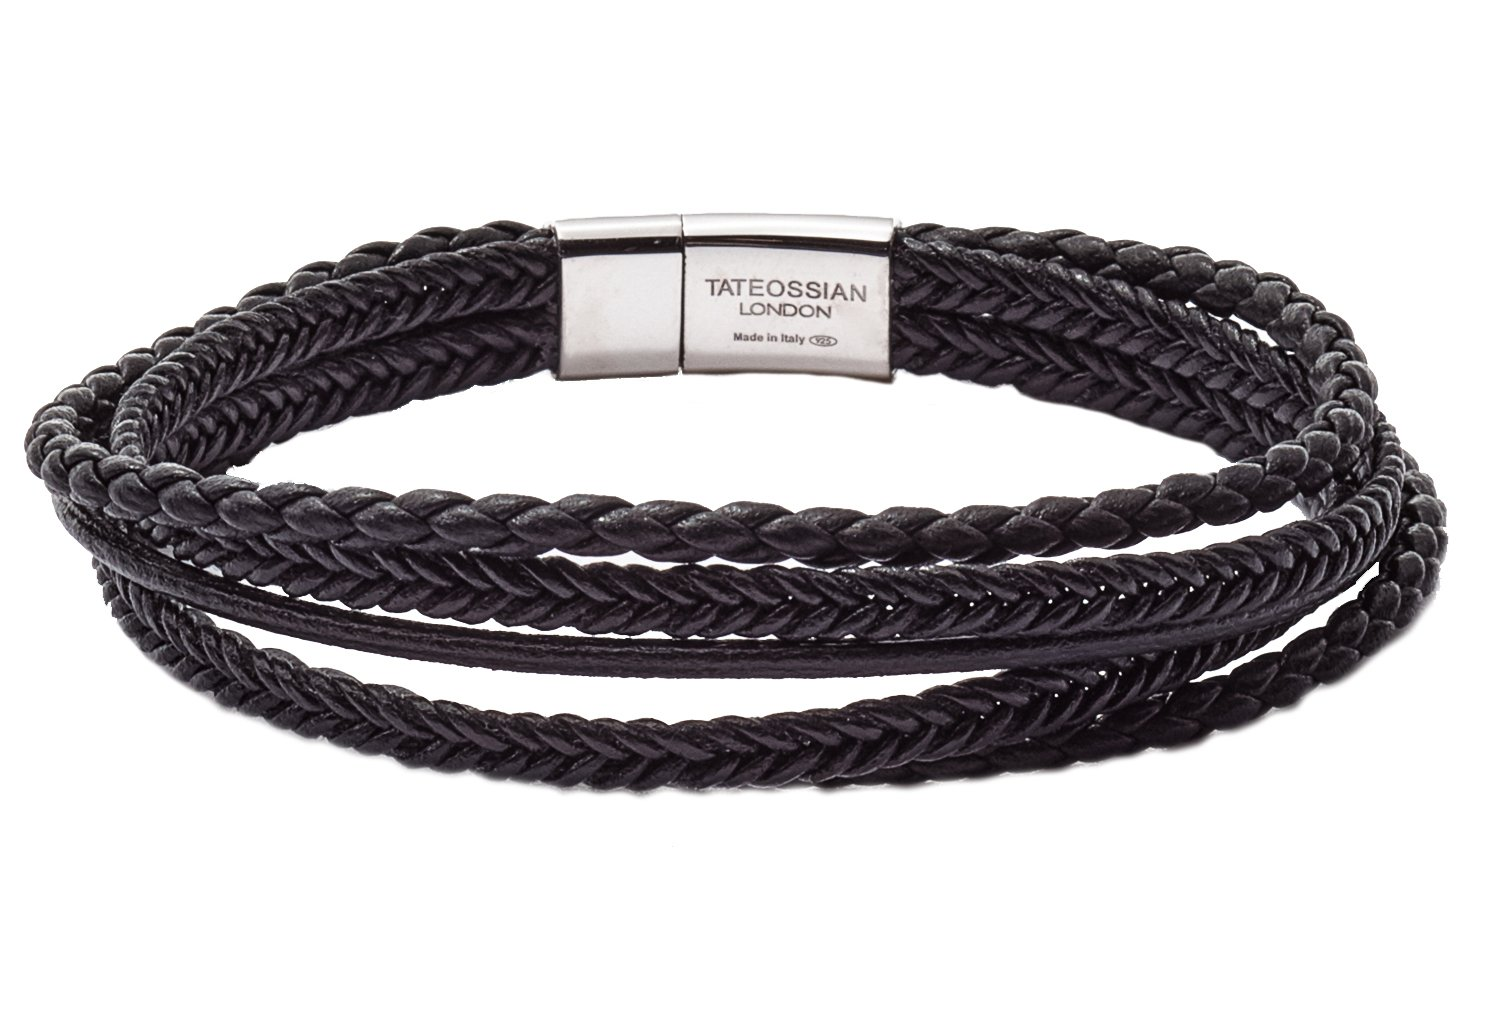 Tateossian Cobra Italian Leather Multi Strand Bracelet - Black, Large 19.5cm